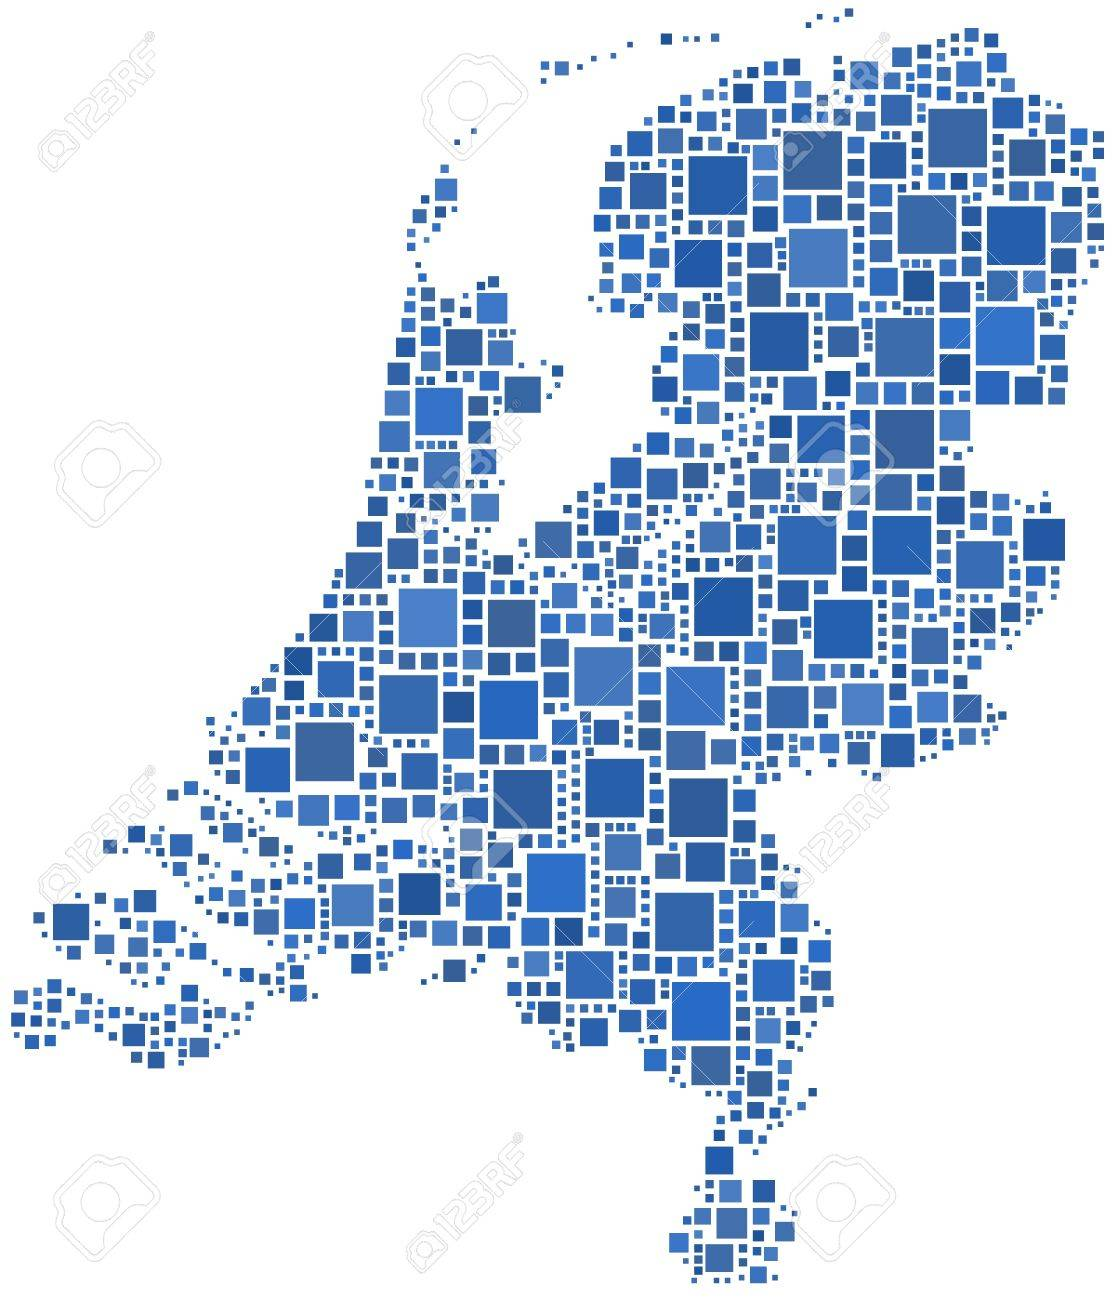 Holland Europe Map.Map Of Holland Europe Royalty Free Cliparts Vectors And Stock